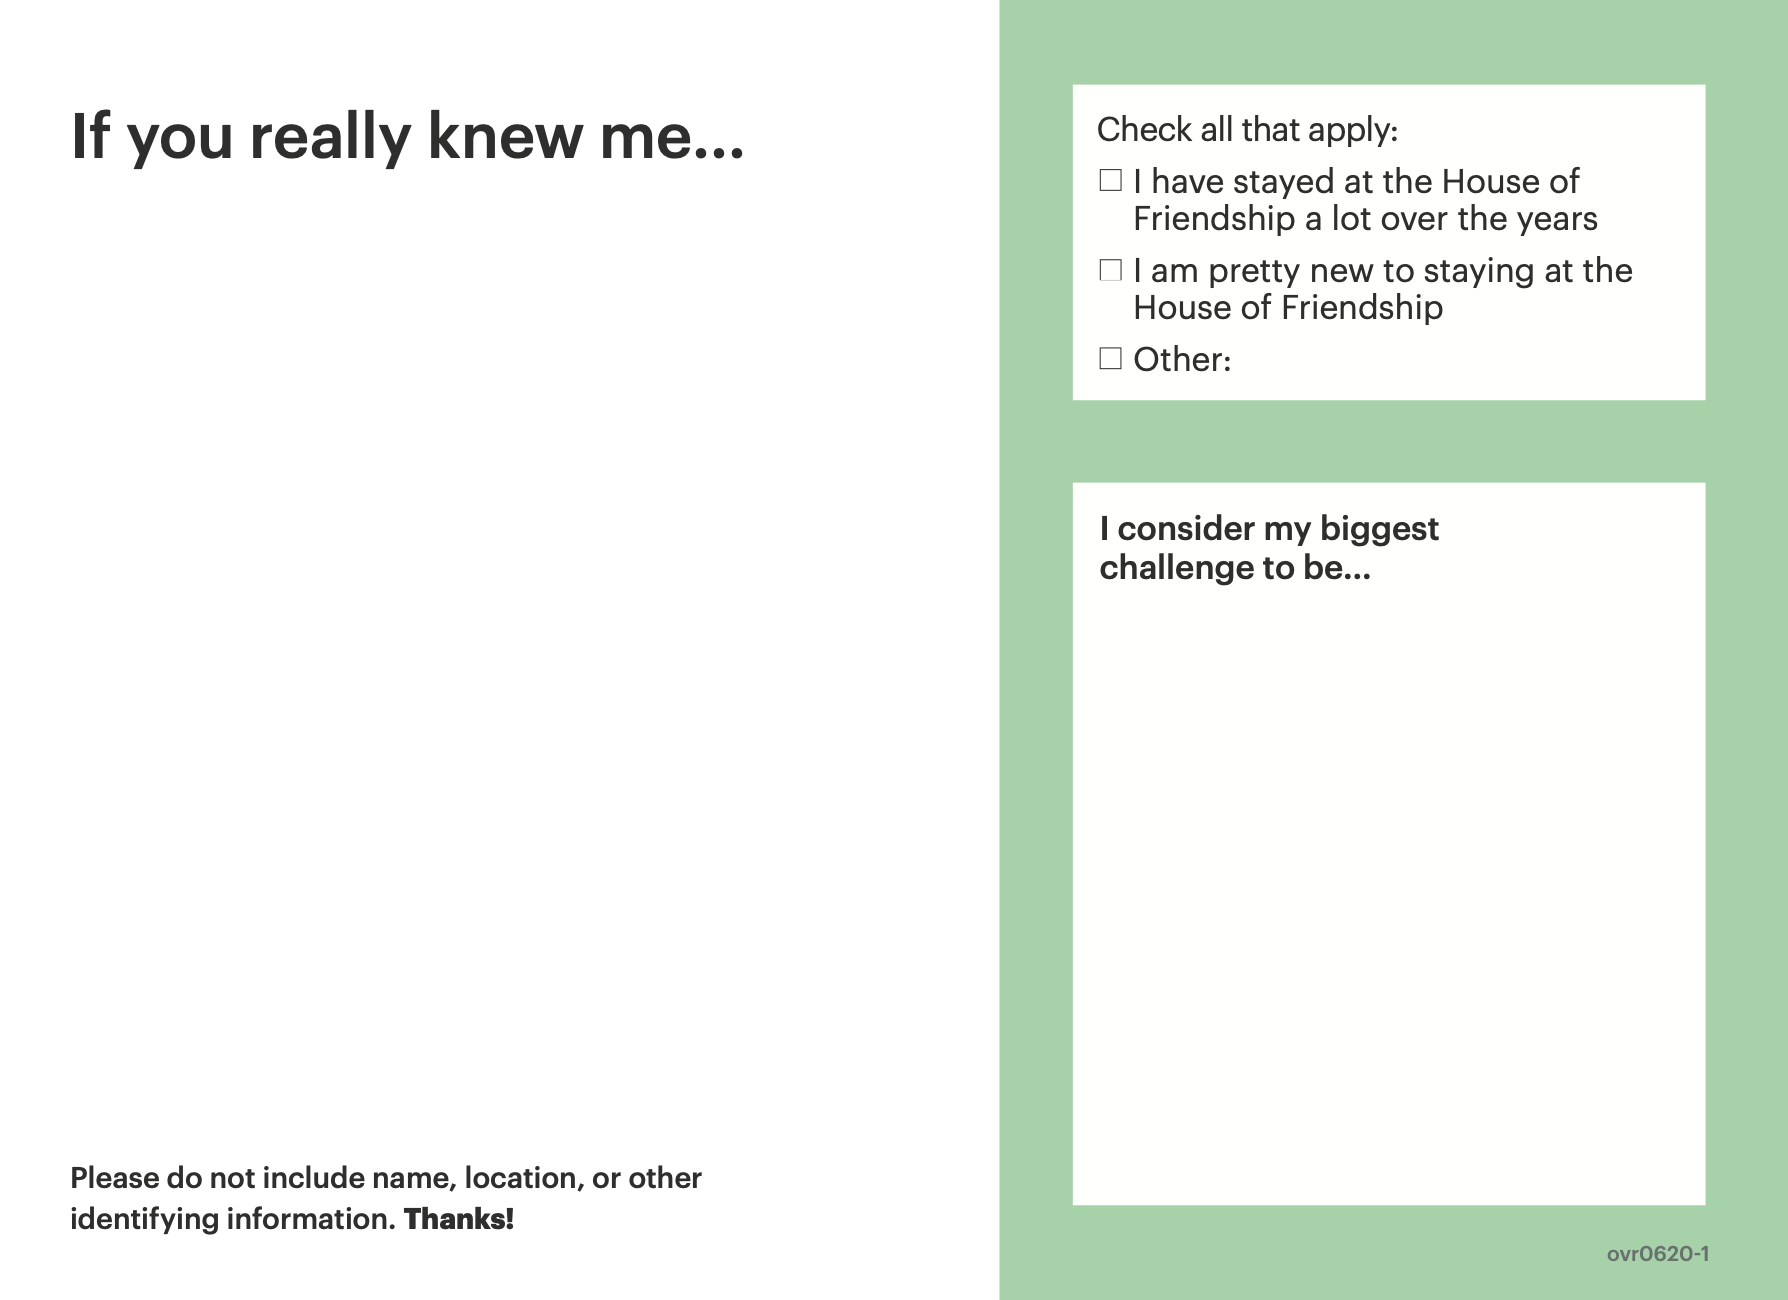 Postcard with questions for those in shelters to answer. For example, if you really knew me...